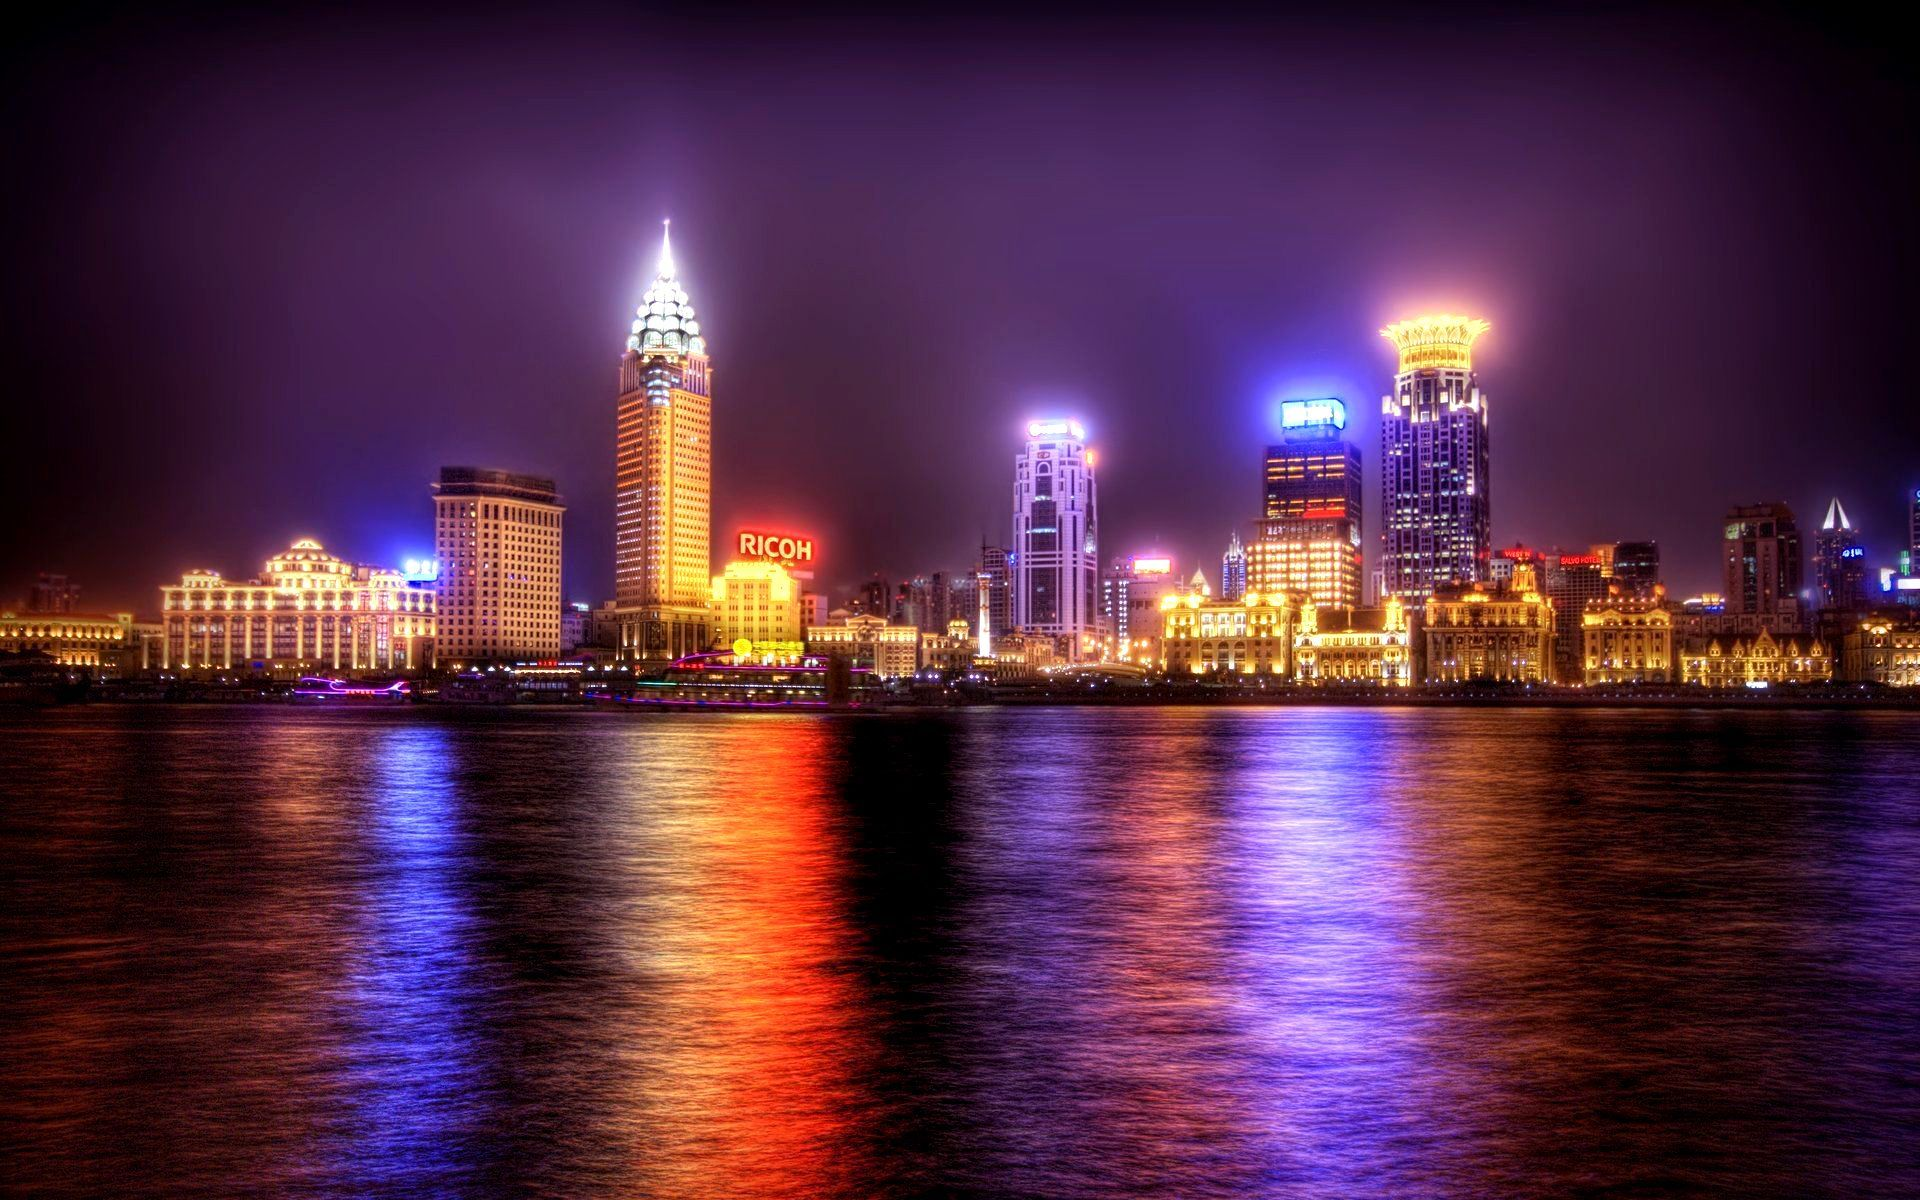 Night-City-Light-Lights-America-Water | Atmosphere | Pinterest:Night-City-Light-Lights-America-Water,Lighting